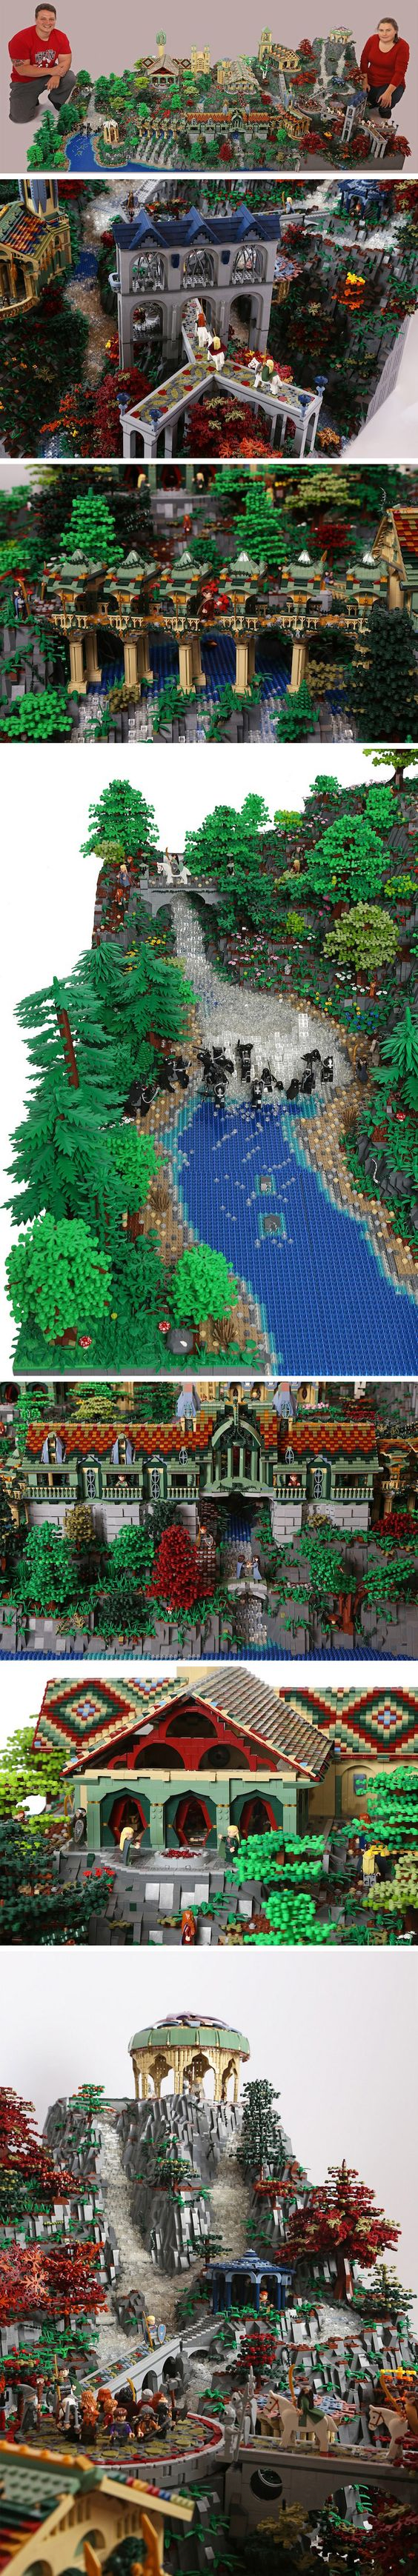 Lego Rivendell. (Lord of the Rings):